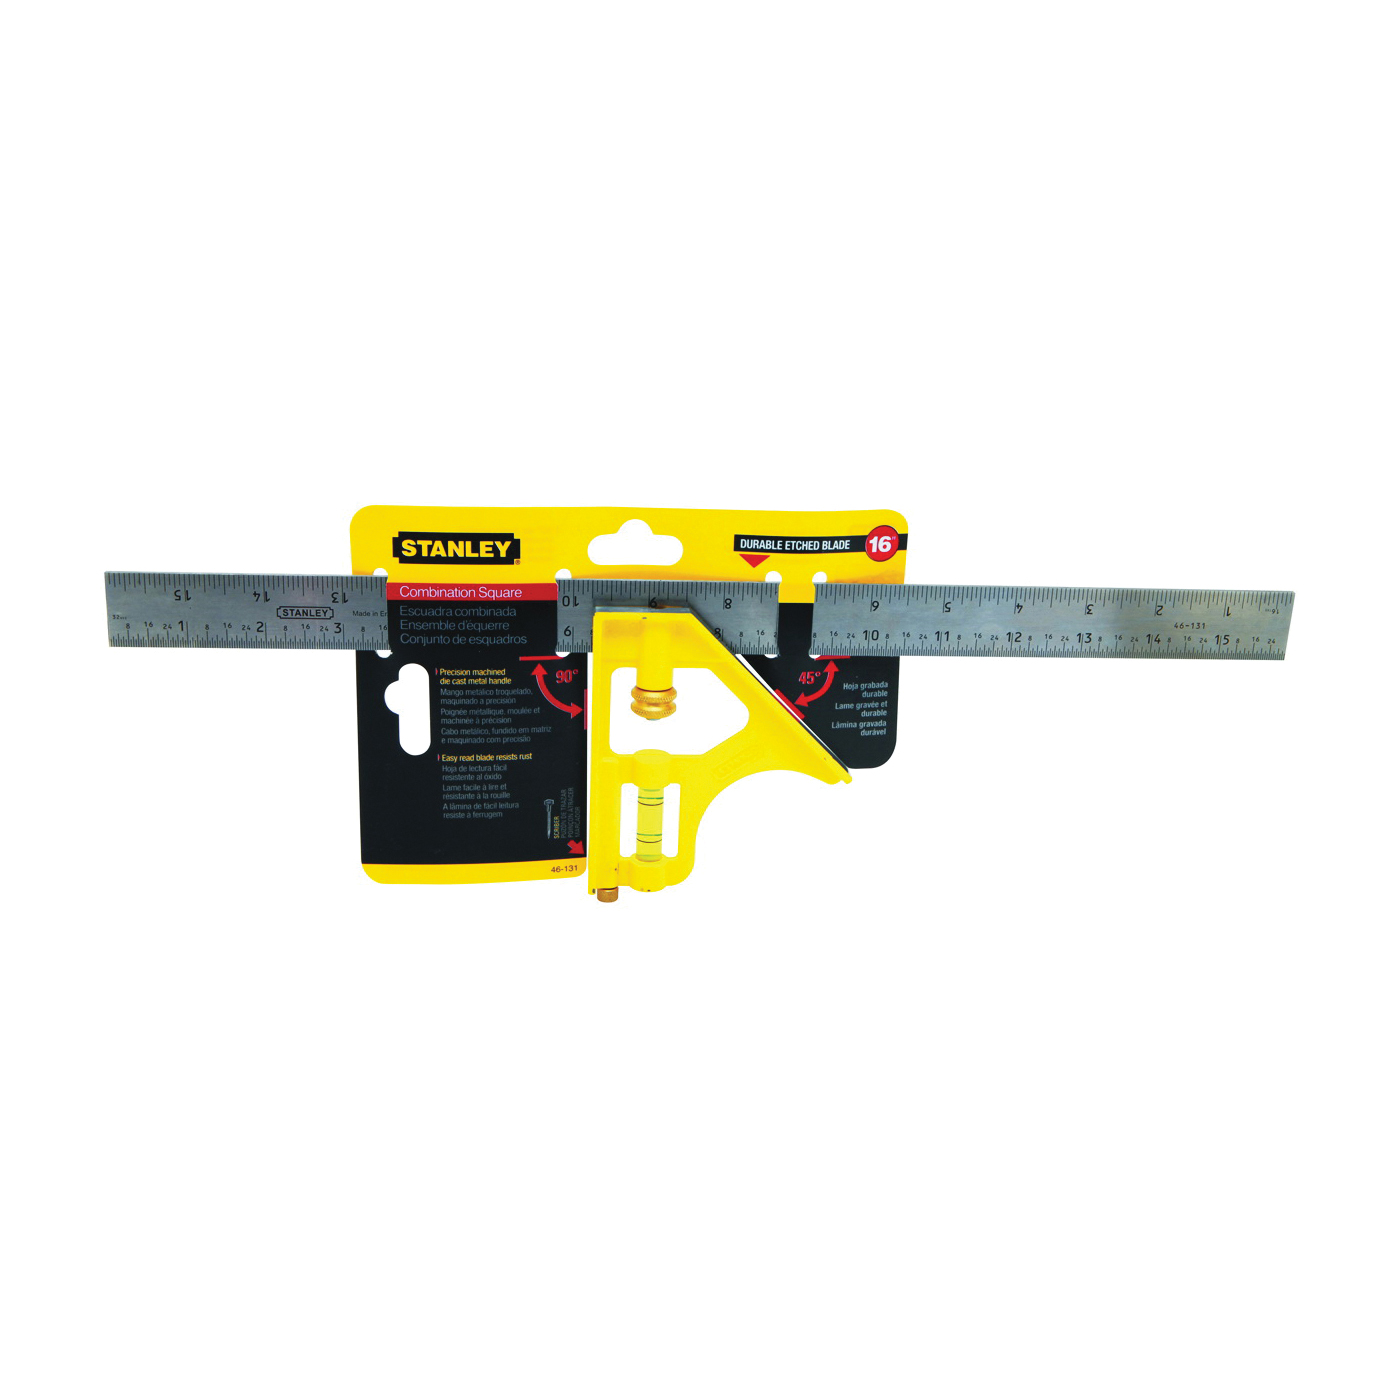 Picture of STANLEY 46-131 Combination Square, 1 in W Blade, 16 in L Blade, SAE Graduation, Stainless Steel Blade